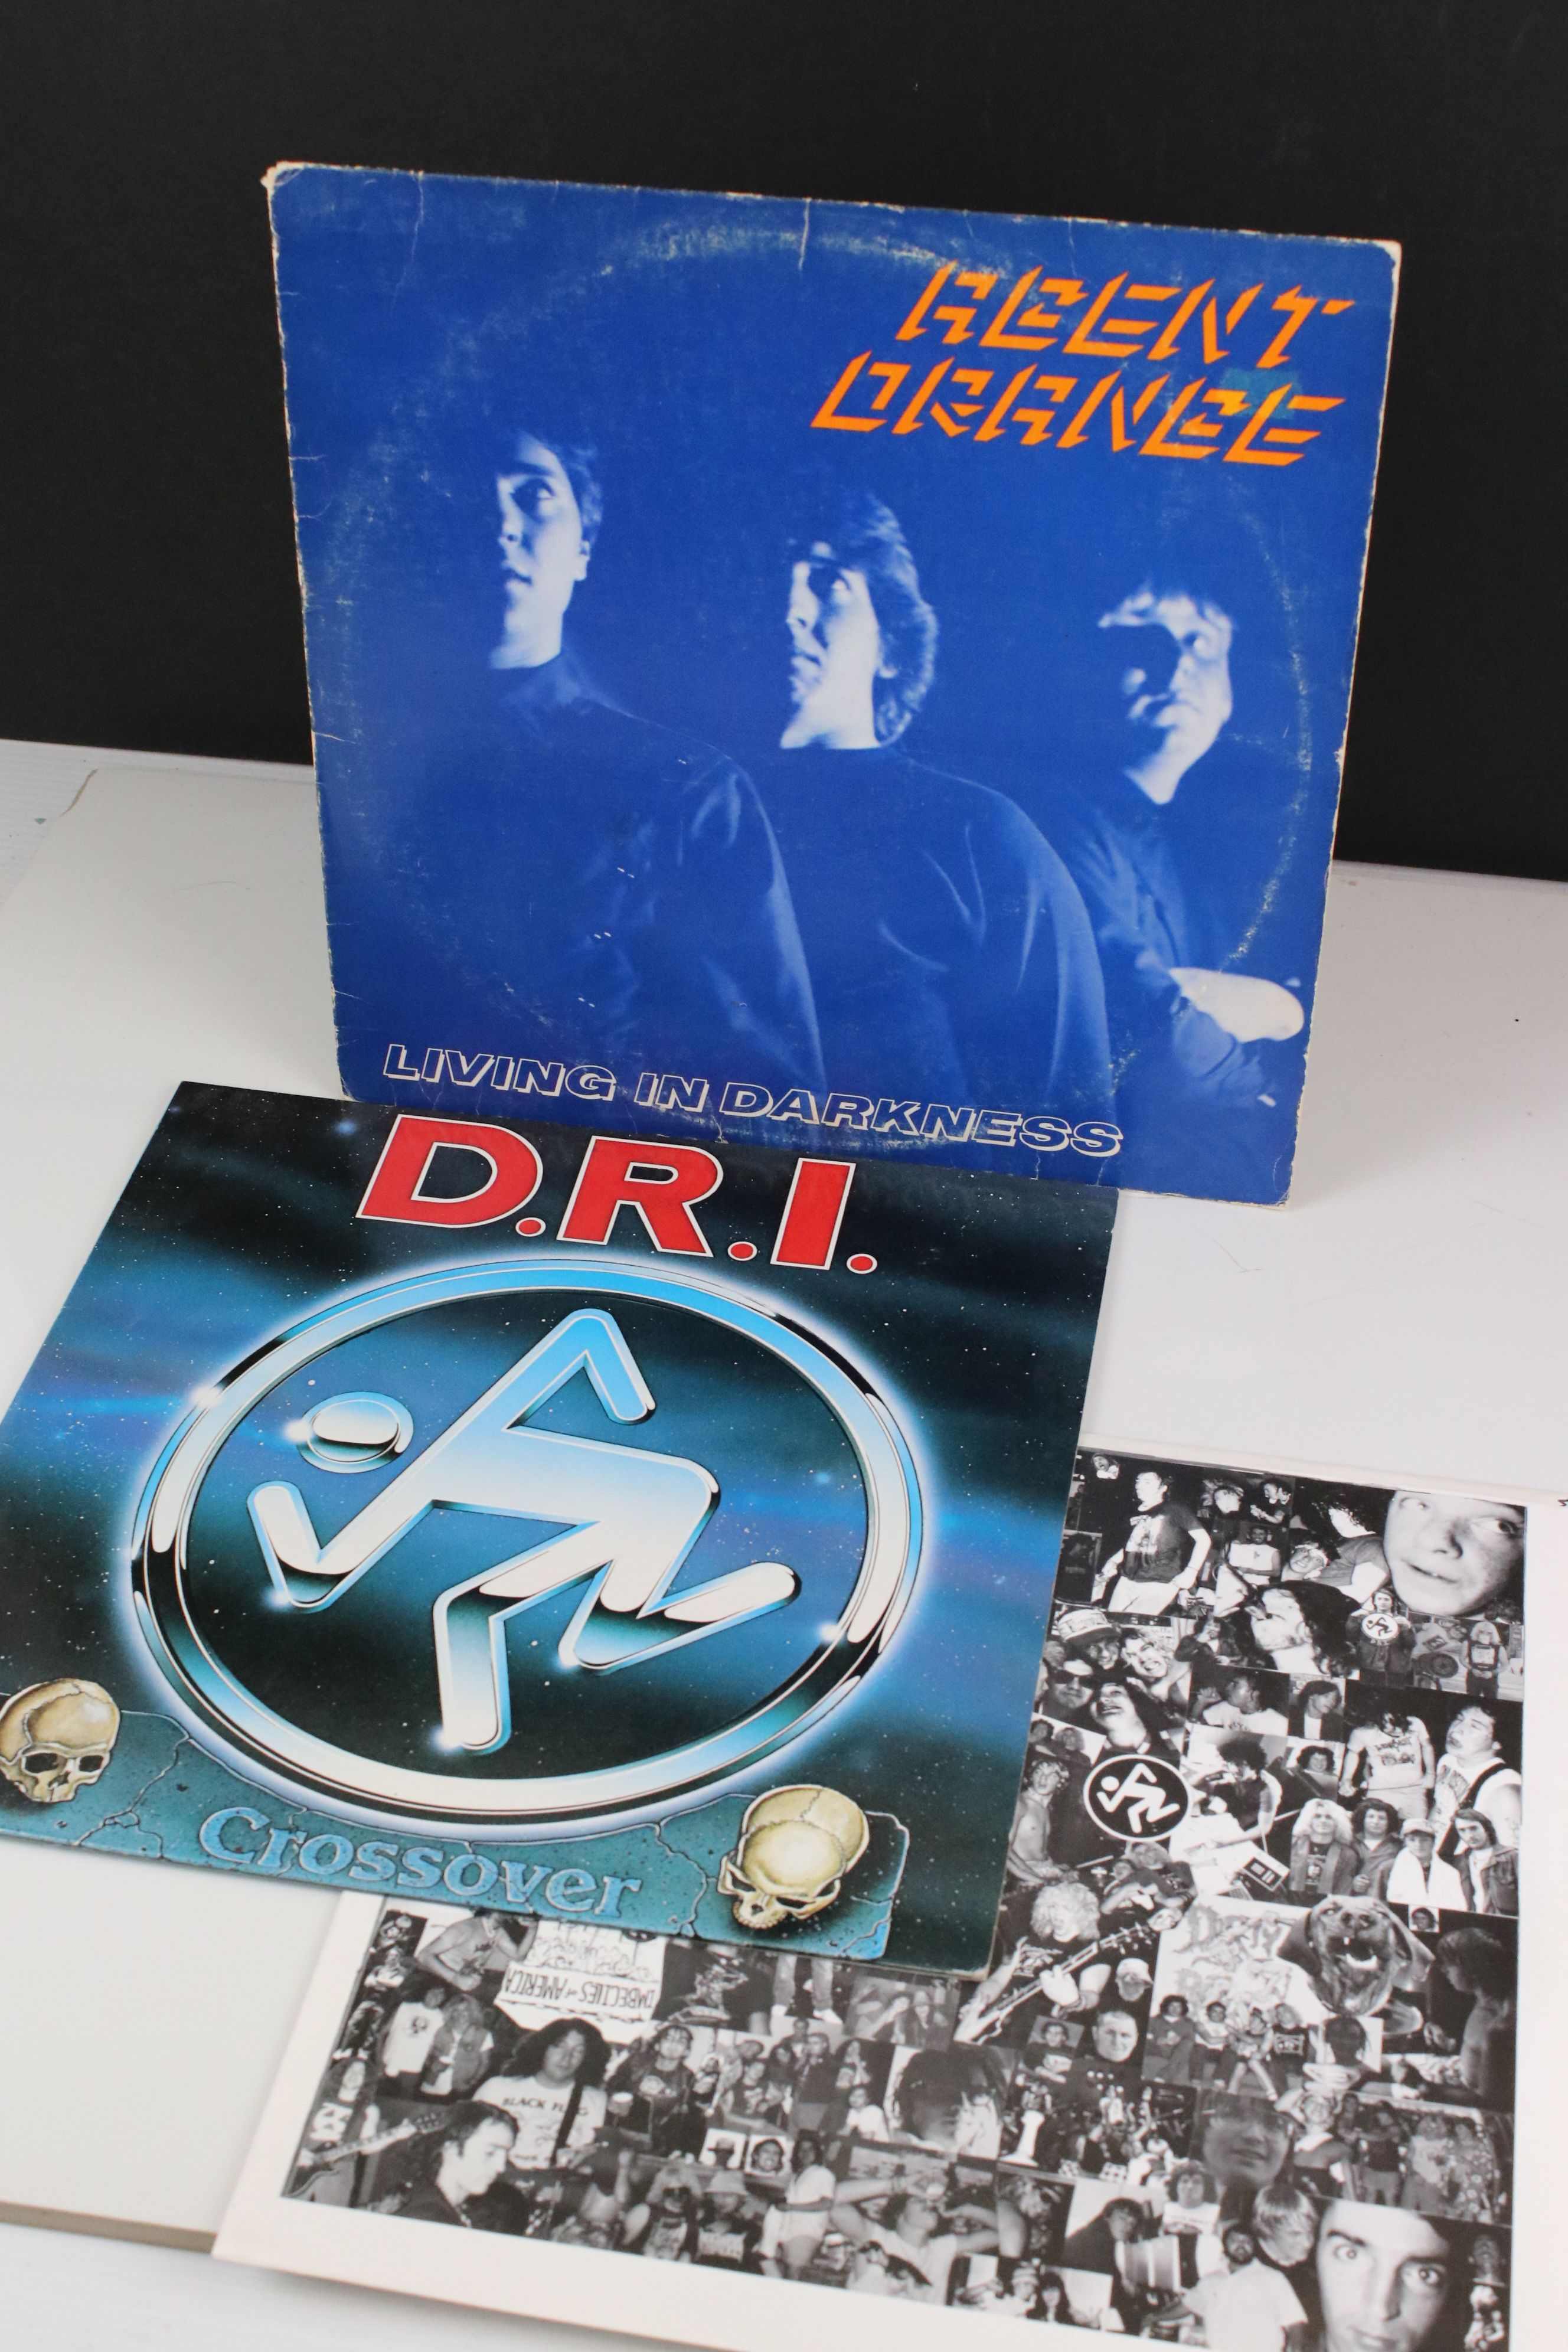 Vinyl - Punk / Thrash - Two LPs to include Agent Orange Living In Darkness 1981 repress and Dirty